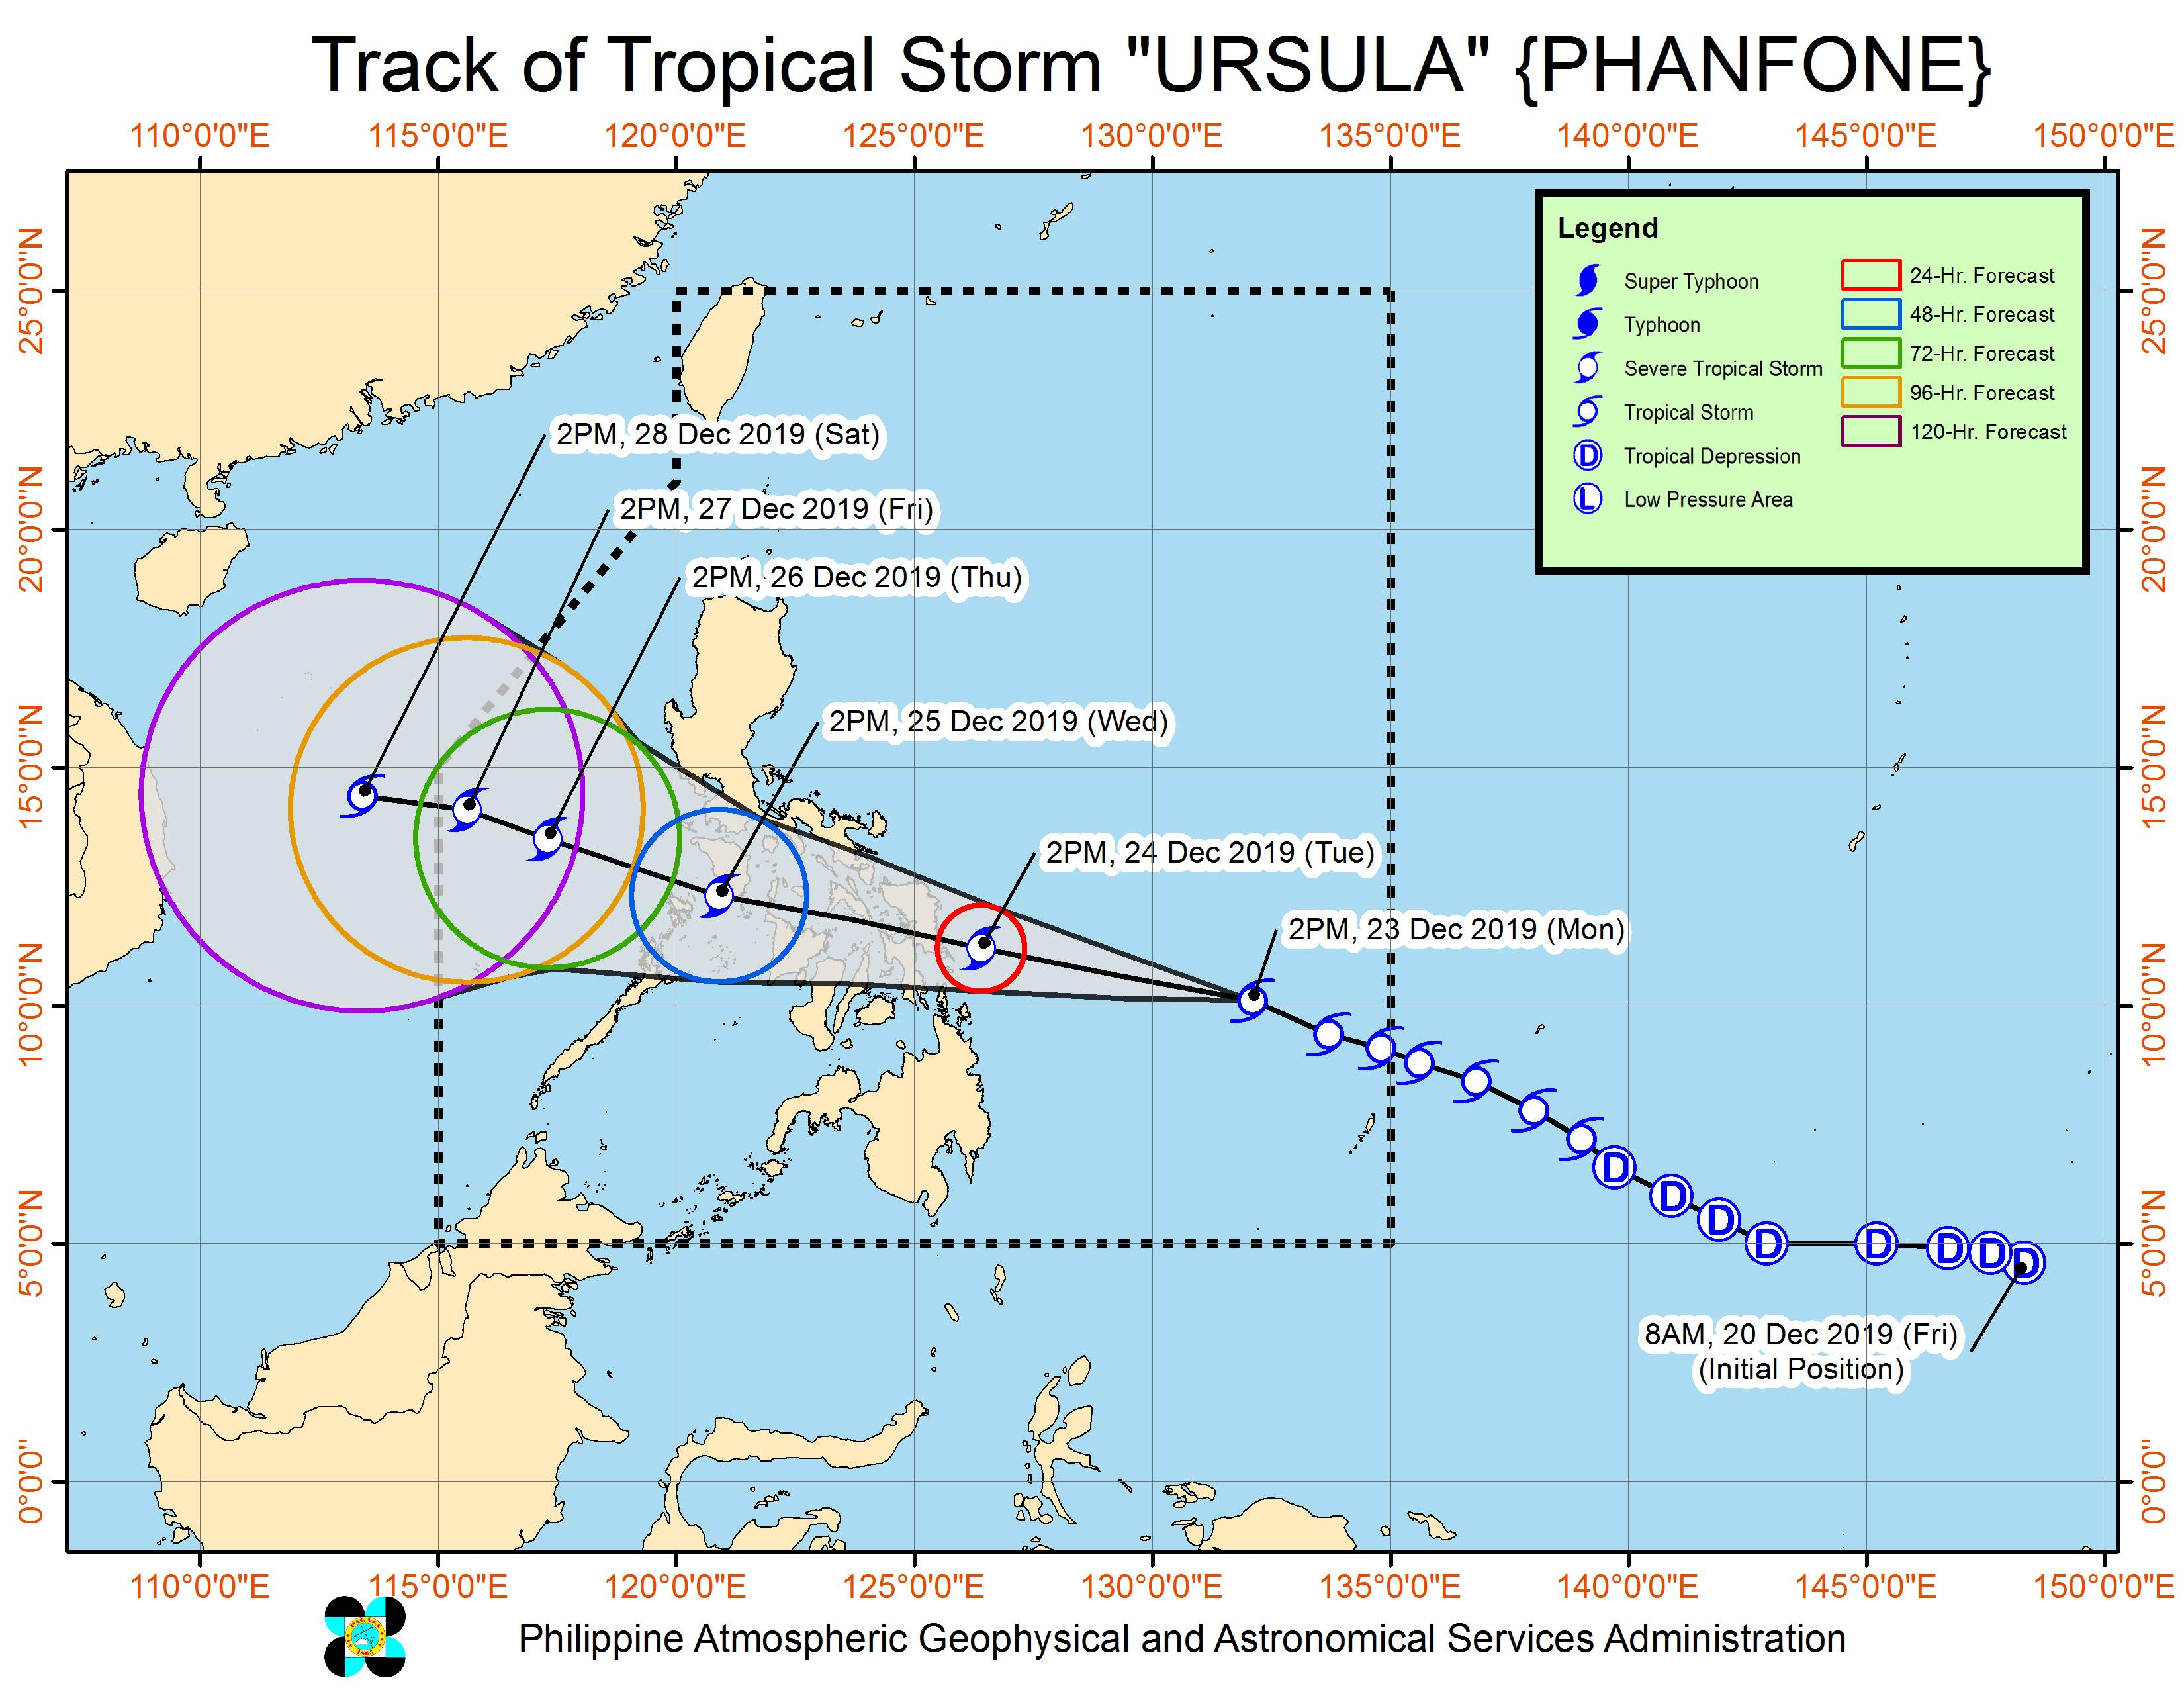 Forecast track of Tropical Storm Ursula (Phanfone) as of December 23, 2019, 5 pm. Image from PAGASA